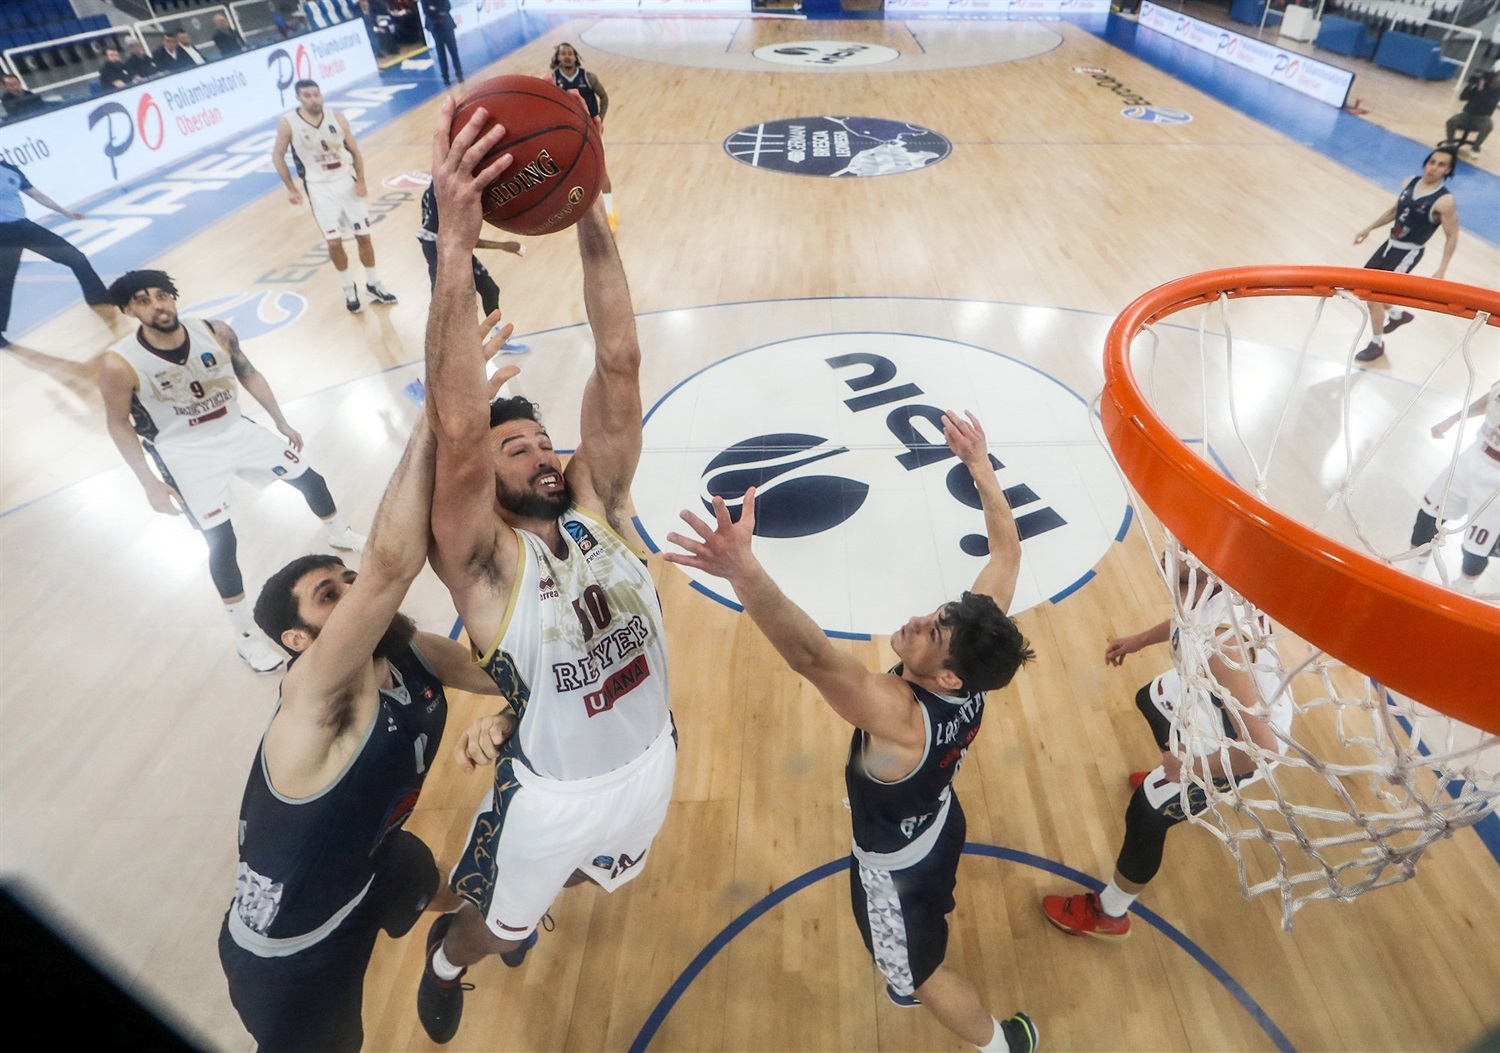 Mitchell Watt - Umana Reyer Venice (photo Simone Venezia - Brescia) - EC19